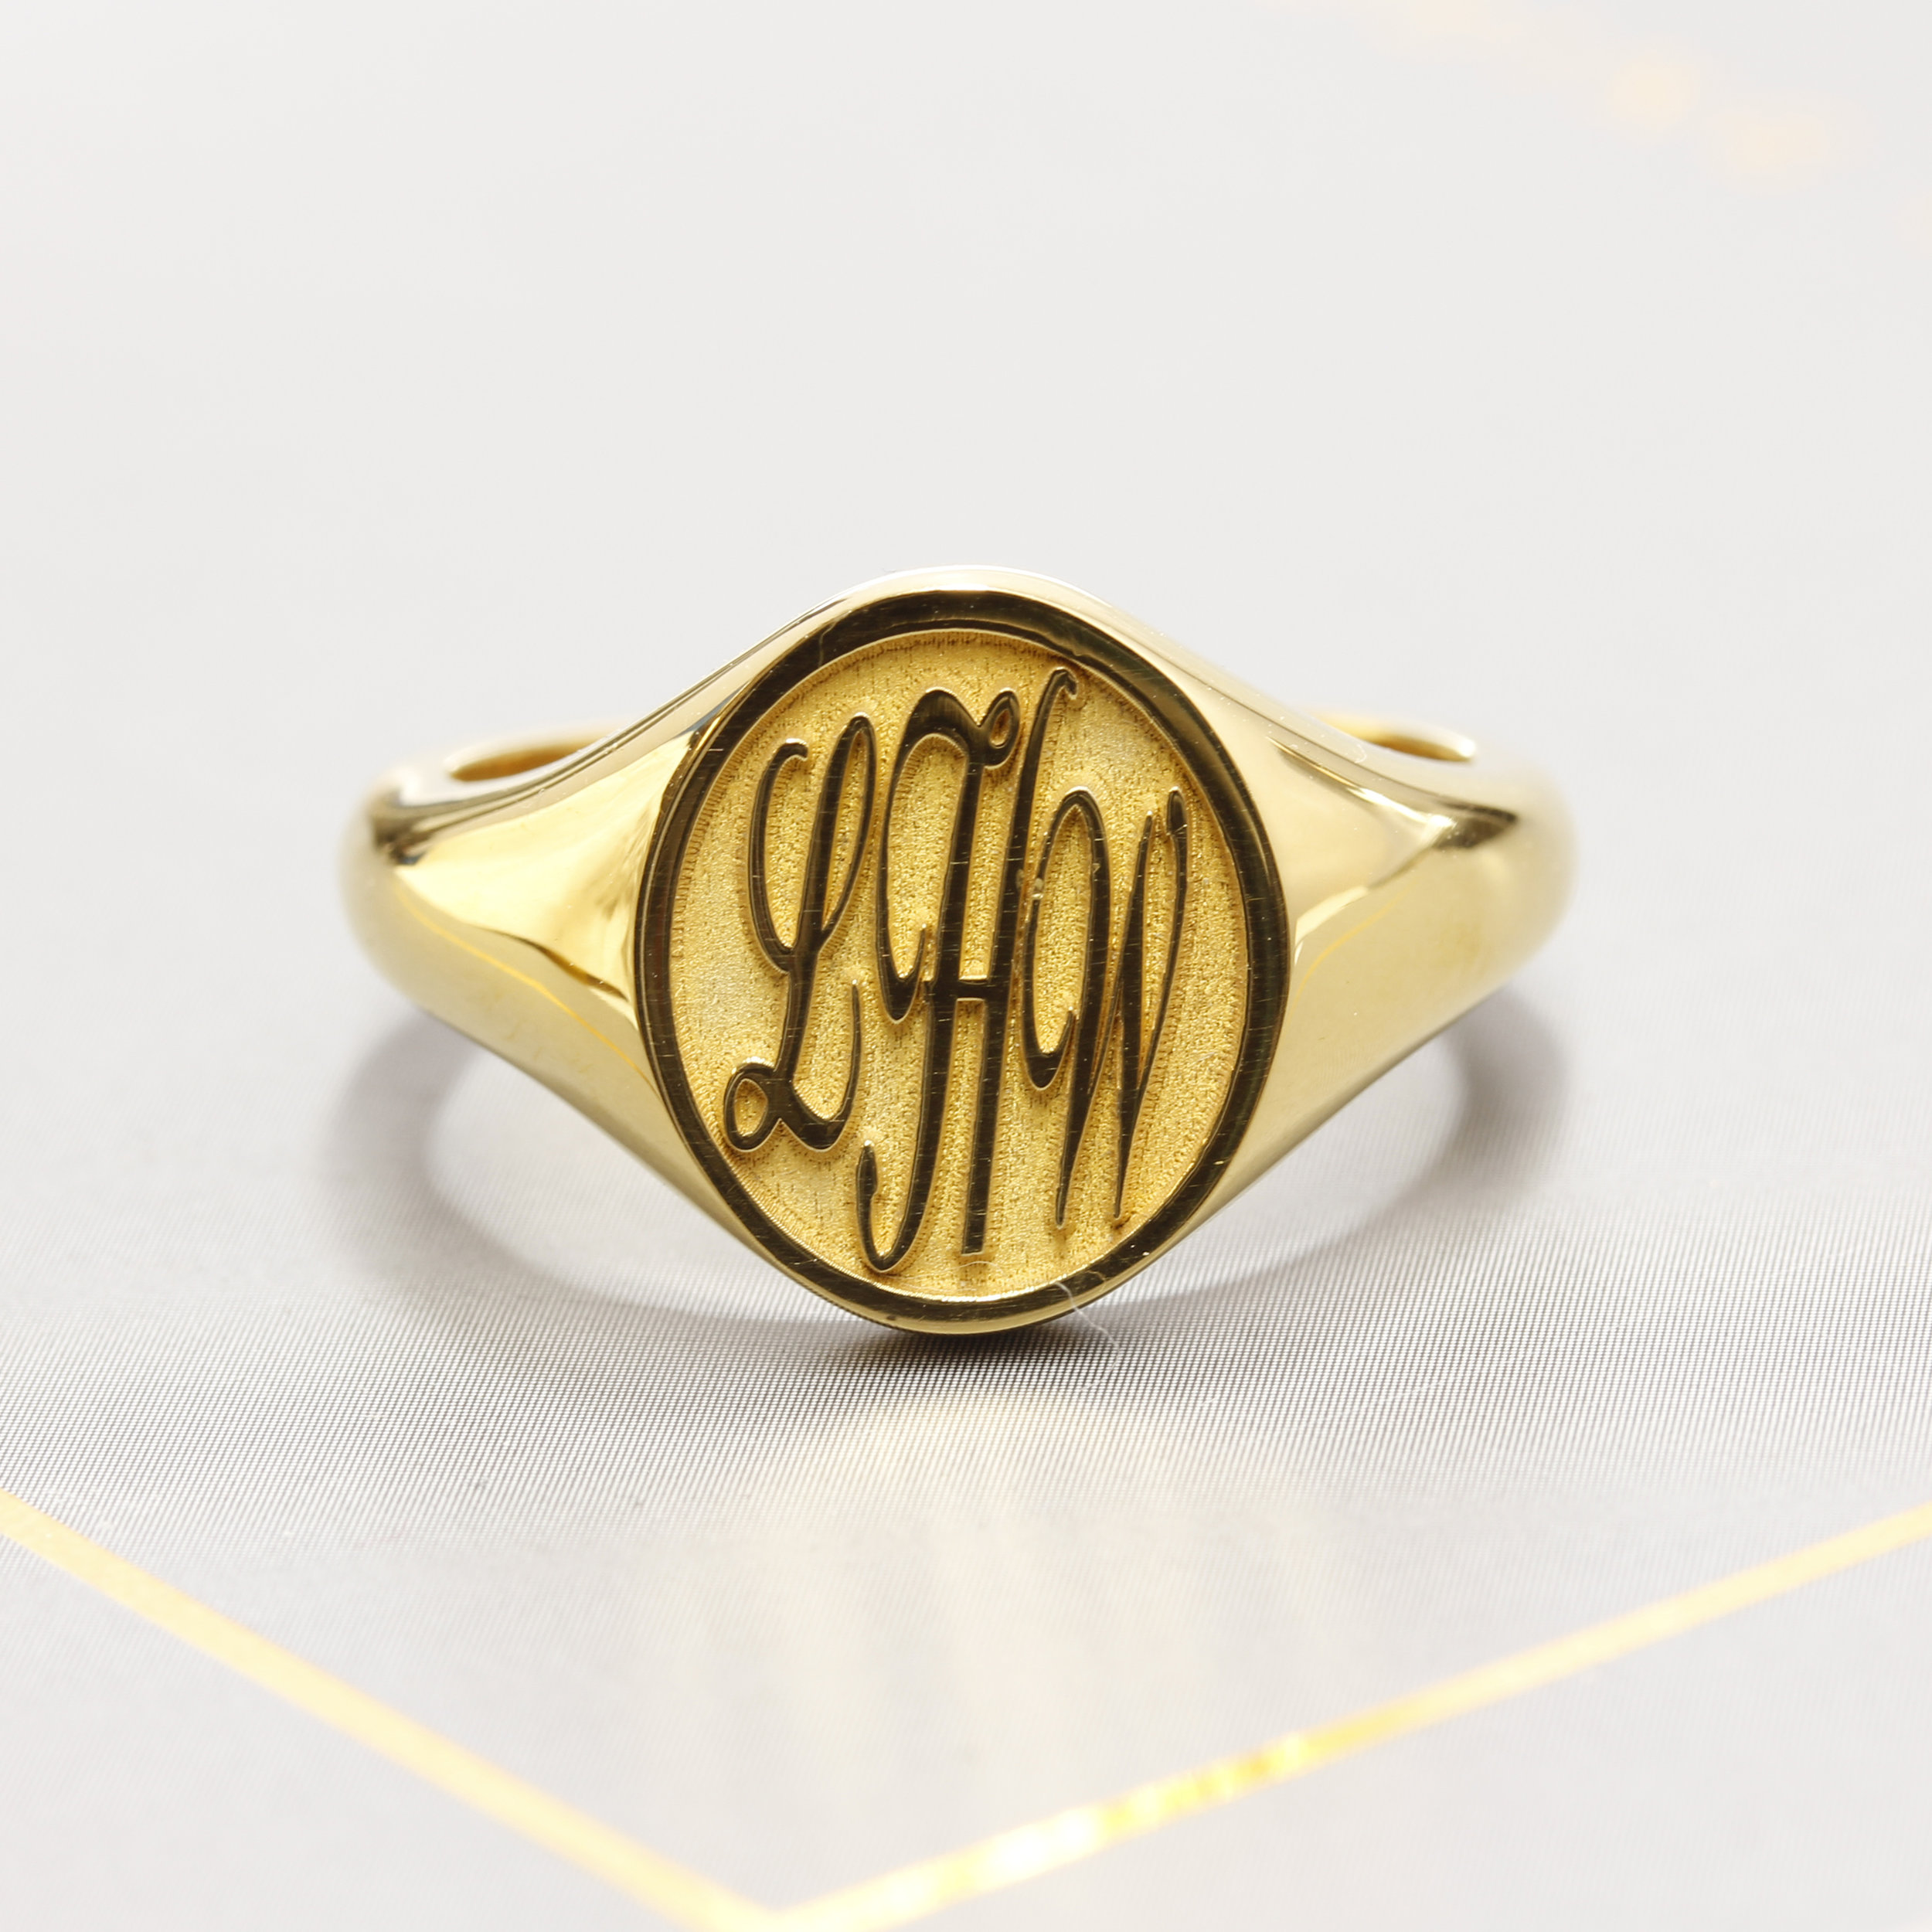 Engraved Signet Ring, Hatton Garden. Handcrafted & design in Laser Engraving Service's studio, in London's historic jewellery district. Hatton Garden.